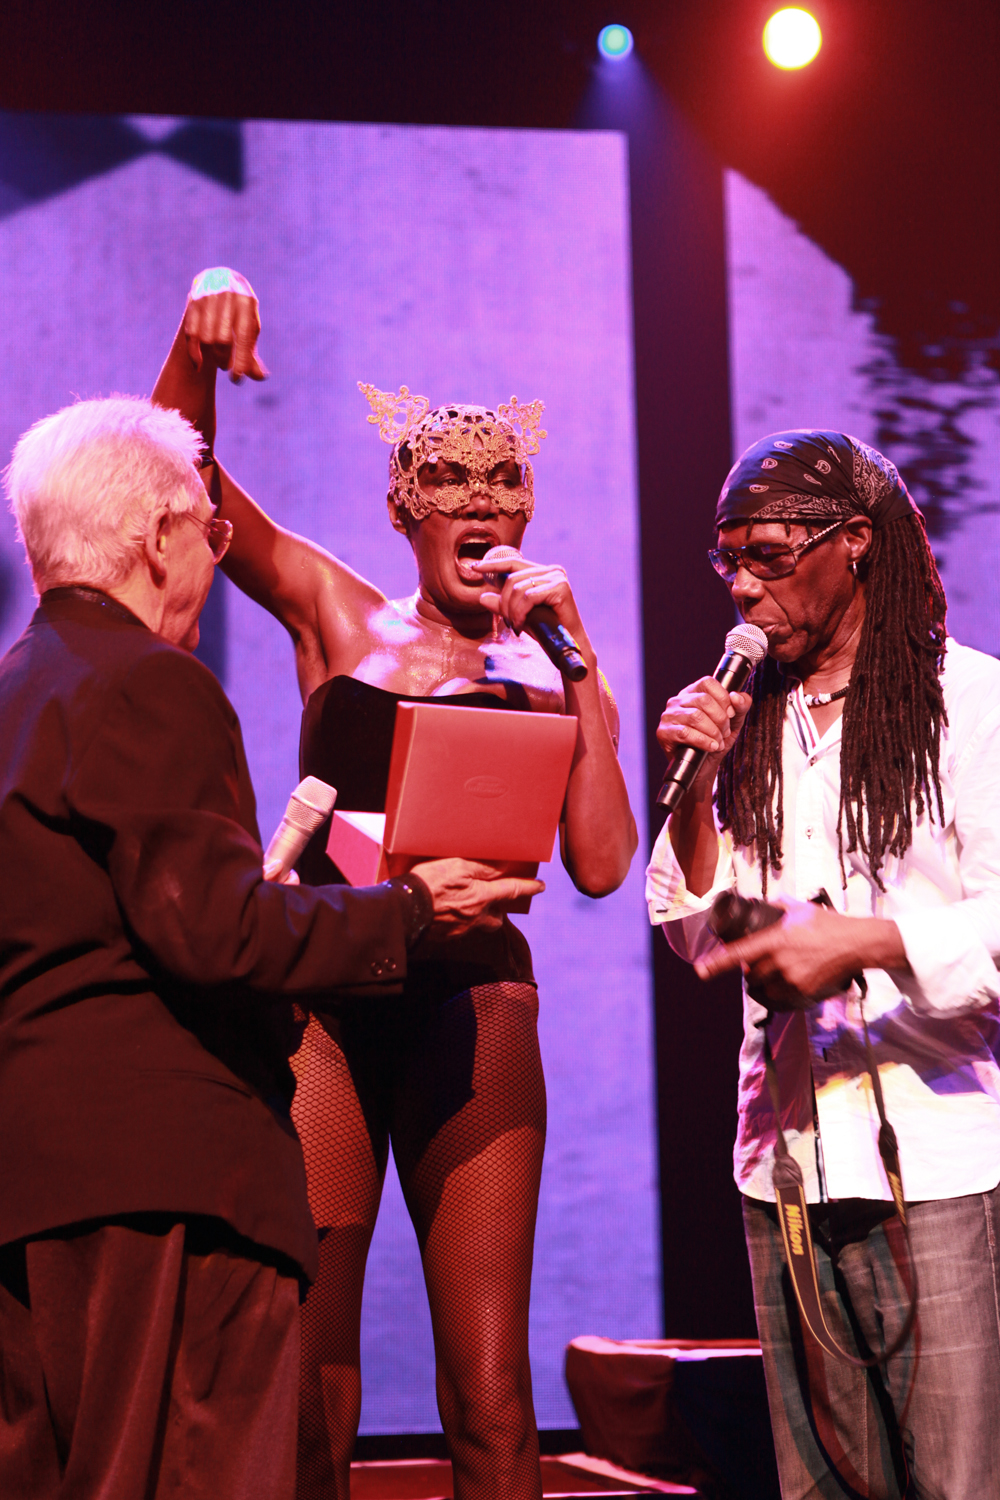 nile-rodgers-nobs-grace-jones_01_montreux-jazz-festival-2012_IMG_5992.jpg